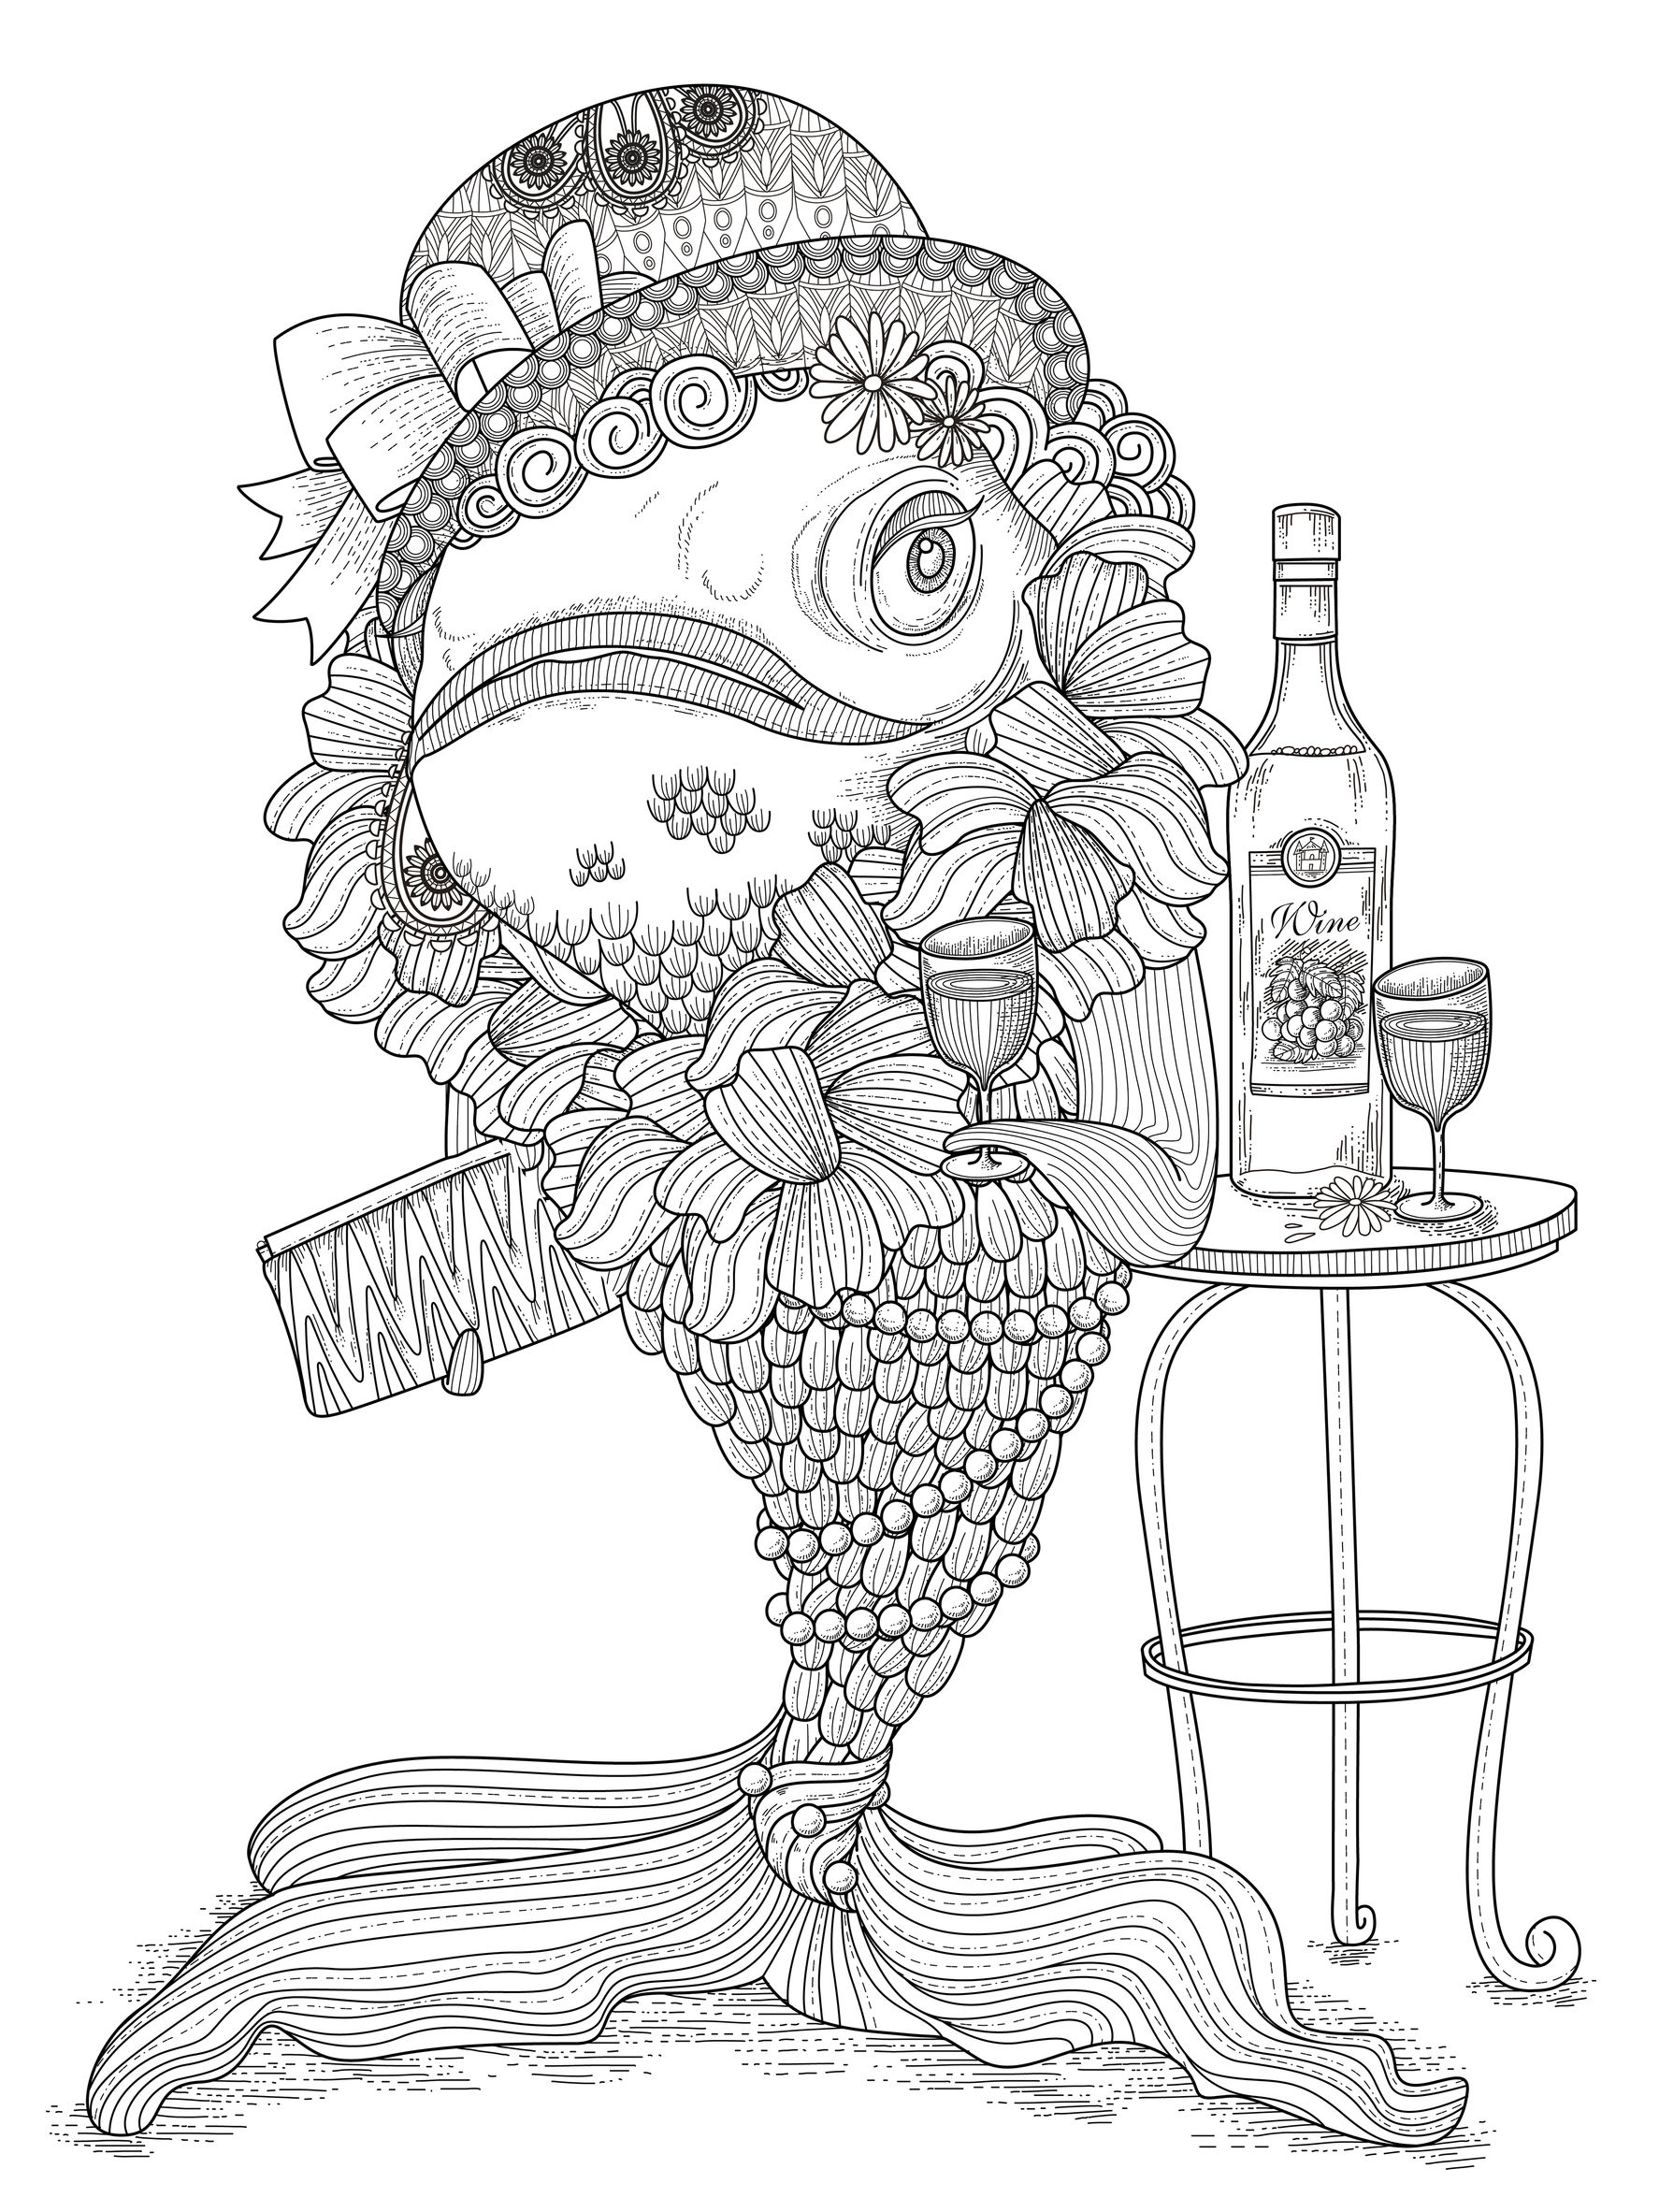 coloring page adults fish humour free to print